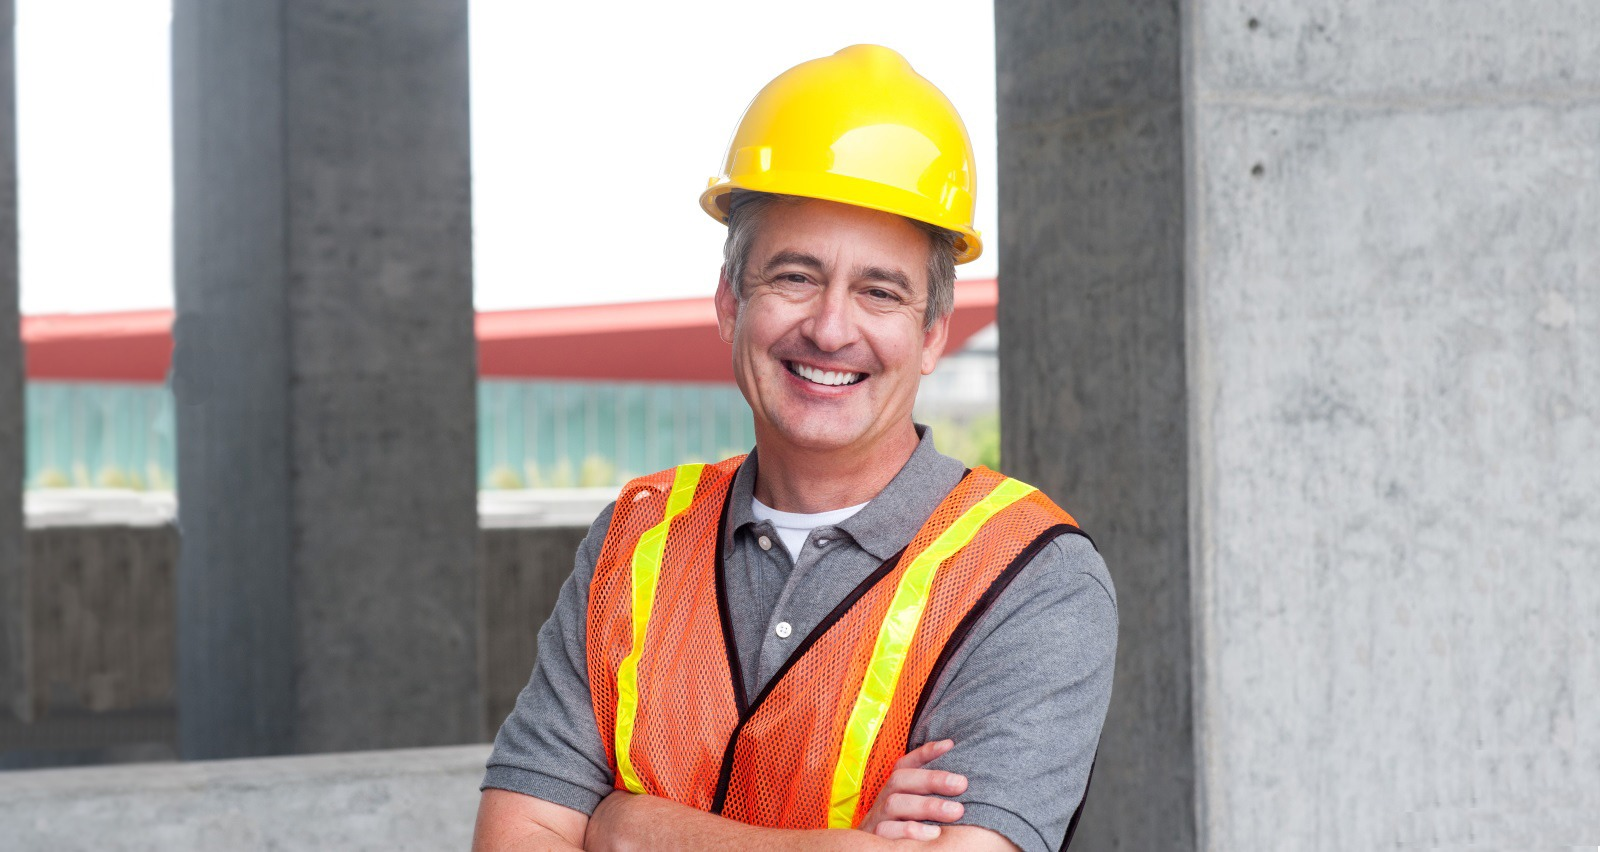 Construction | OHS Software | WHS Software | Safety Software